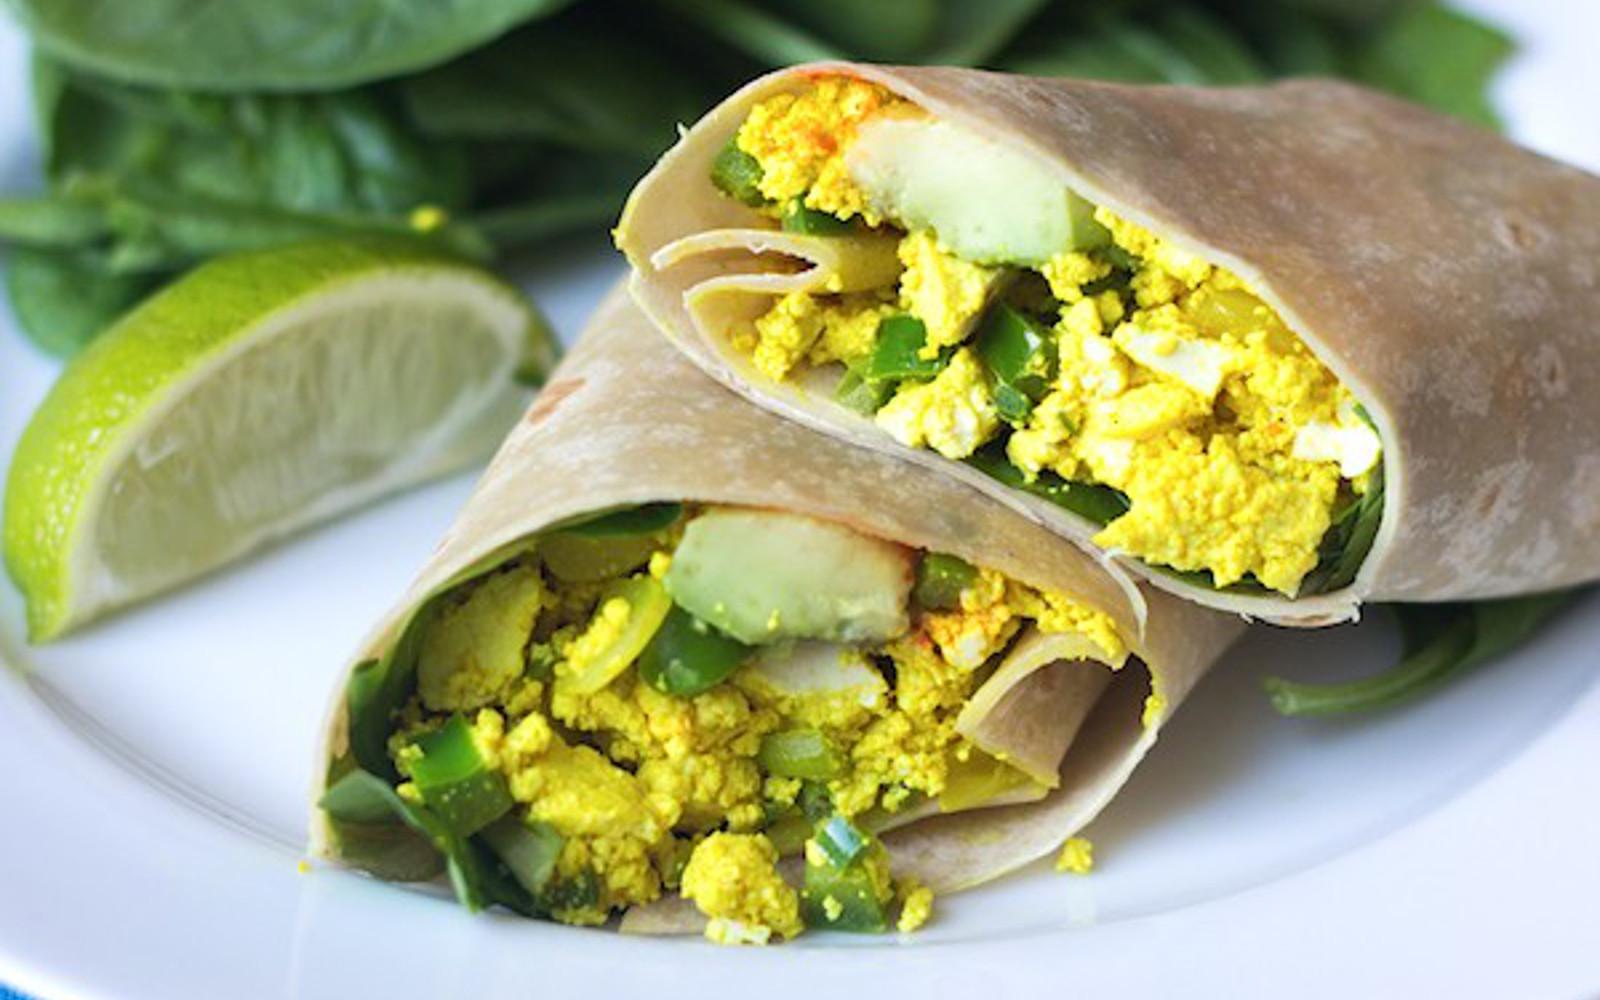 Spicy Tofu Scramble and Avocado Breakfast Burrito